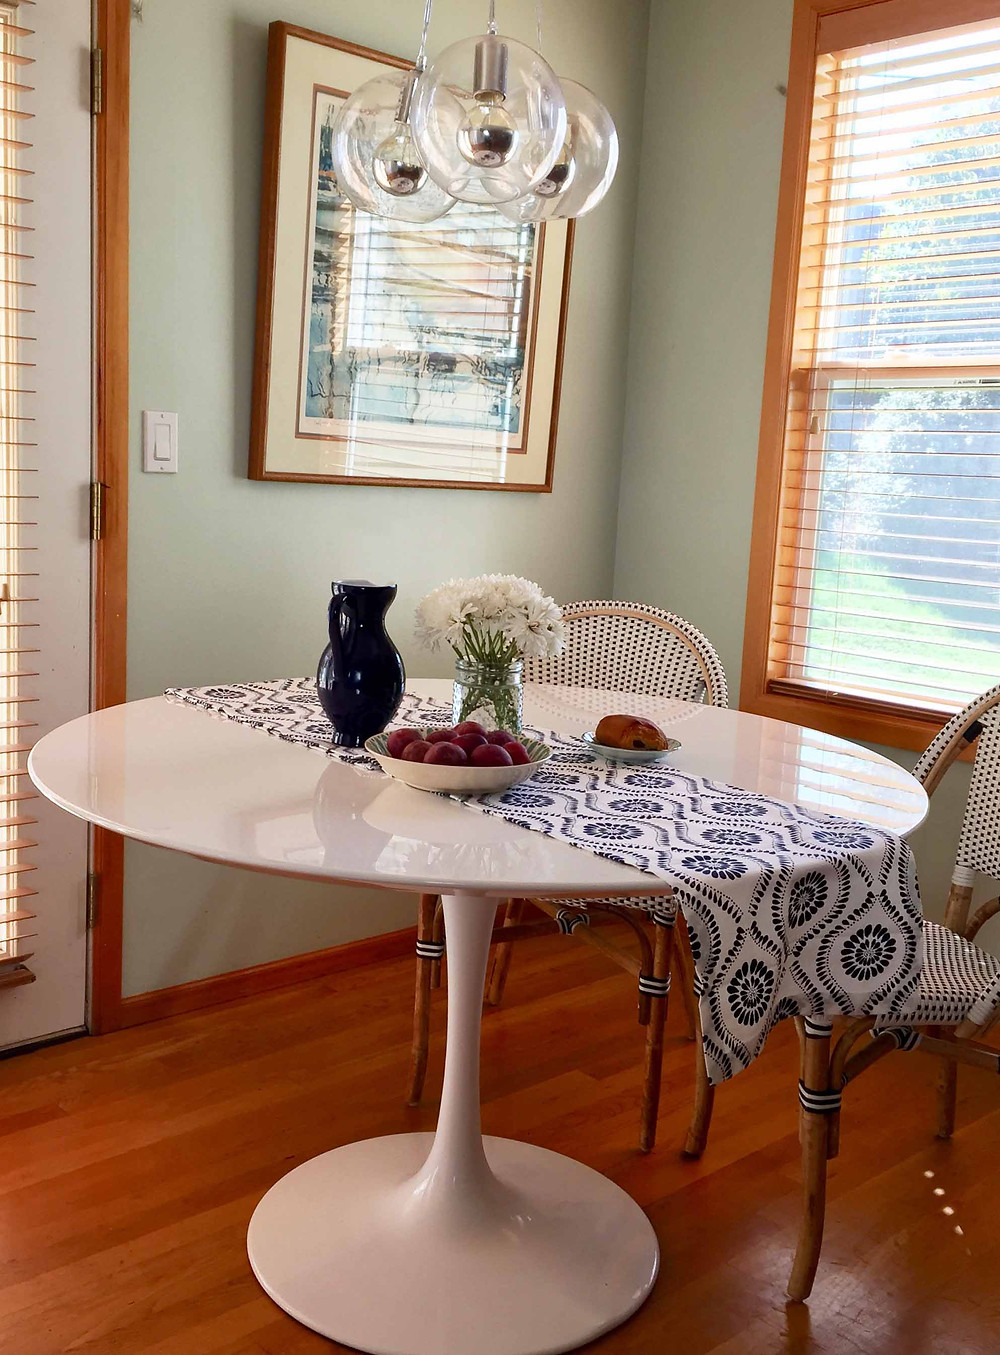 tulip style table in kitchen eating nook